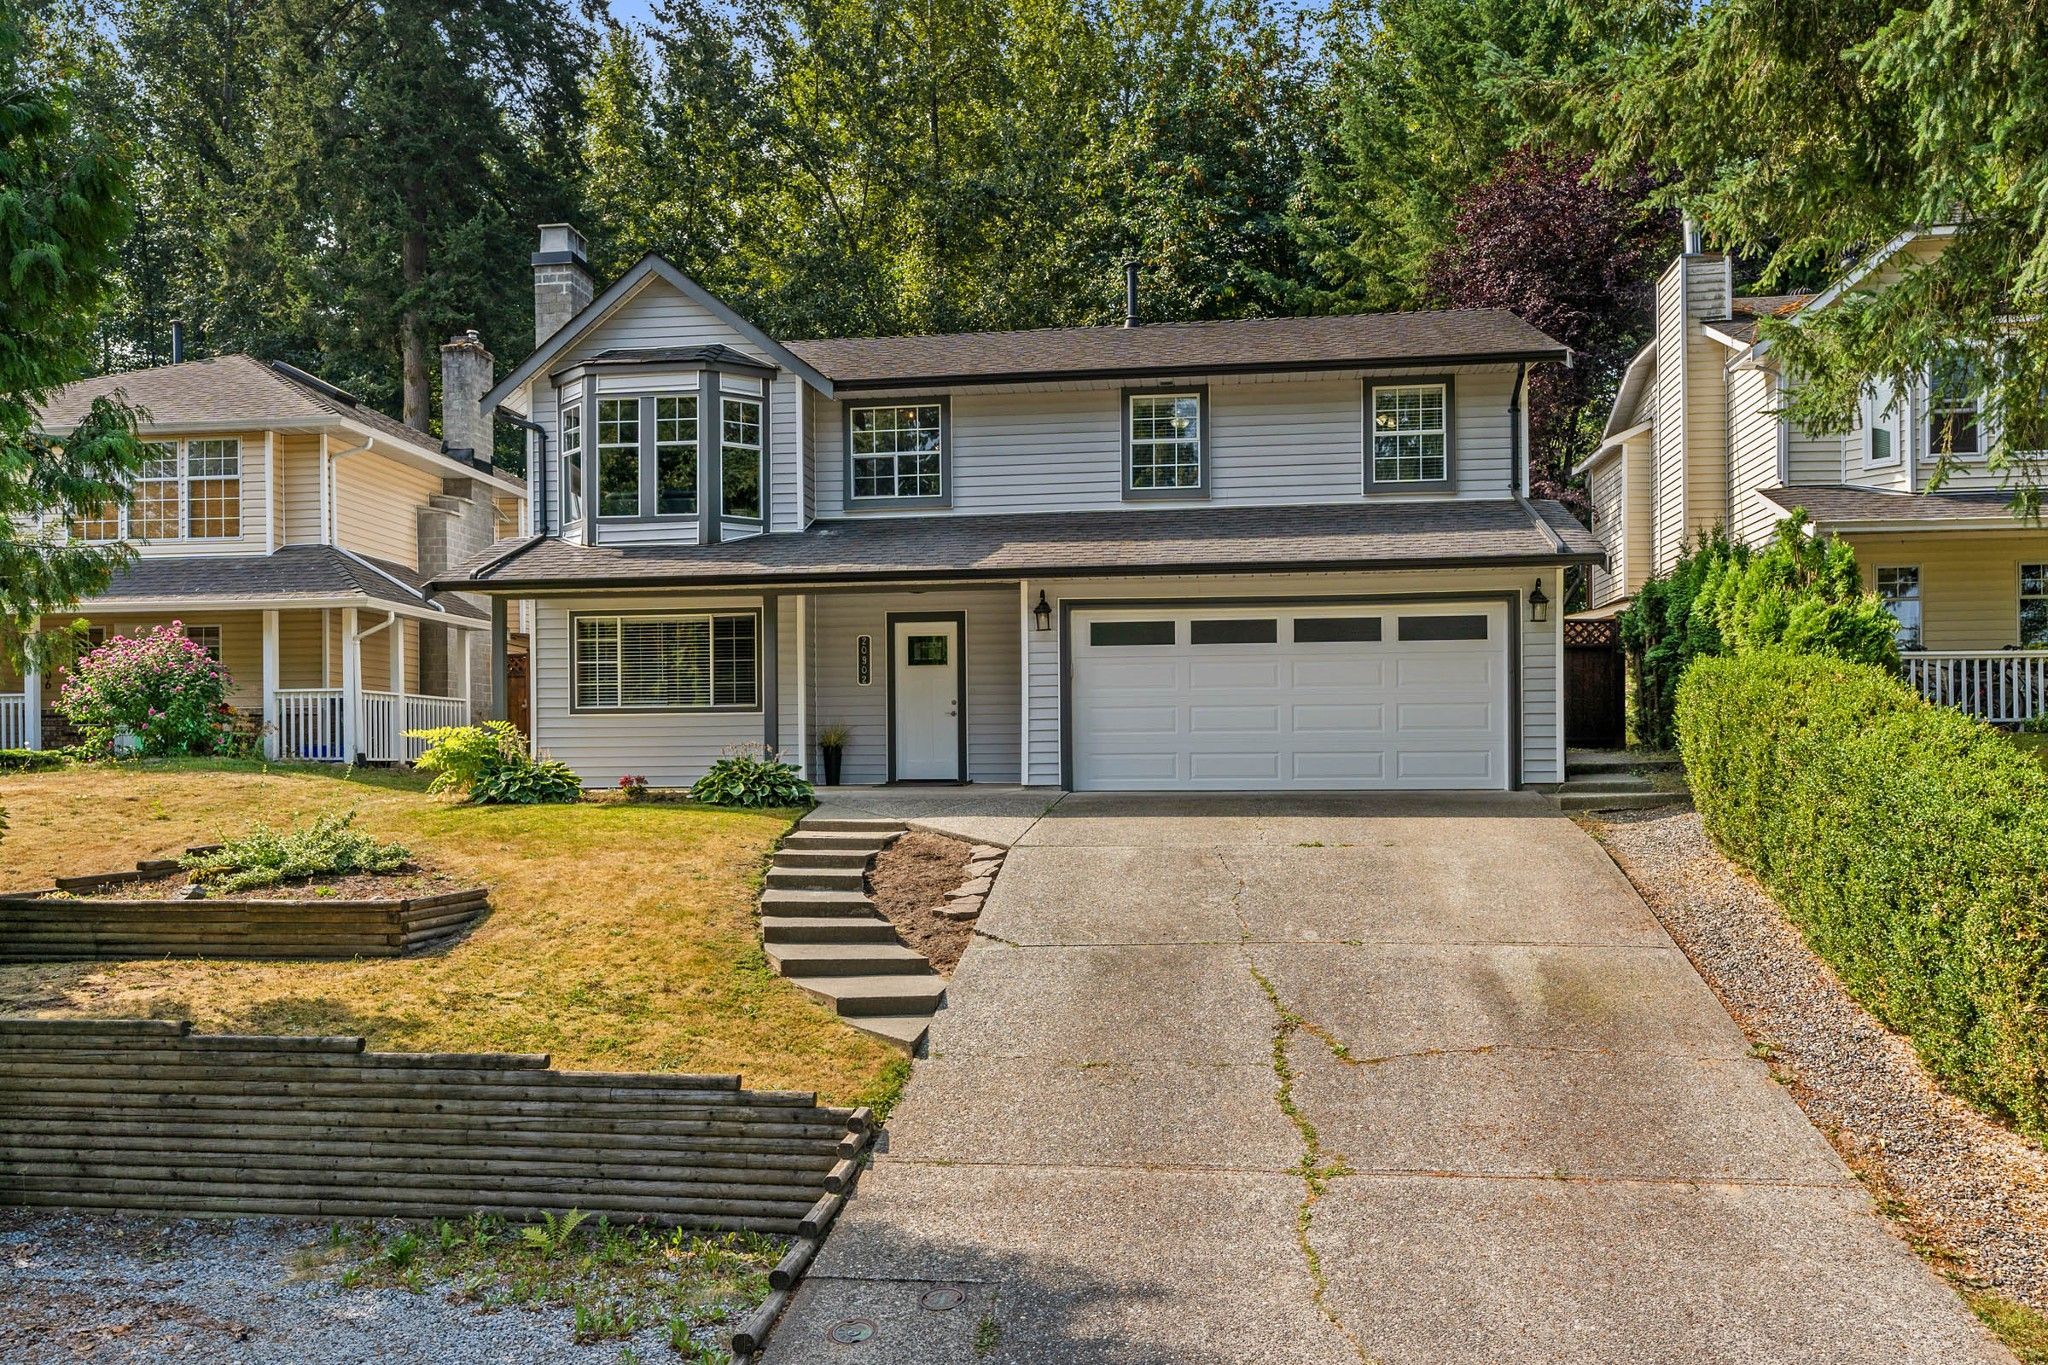 Main Photo: 20902 94B Avenue in Langley: Walnut Grove House for sale : MLS®# R2310756